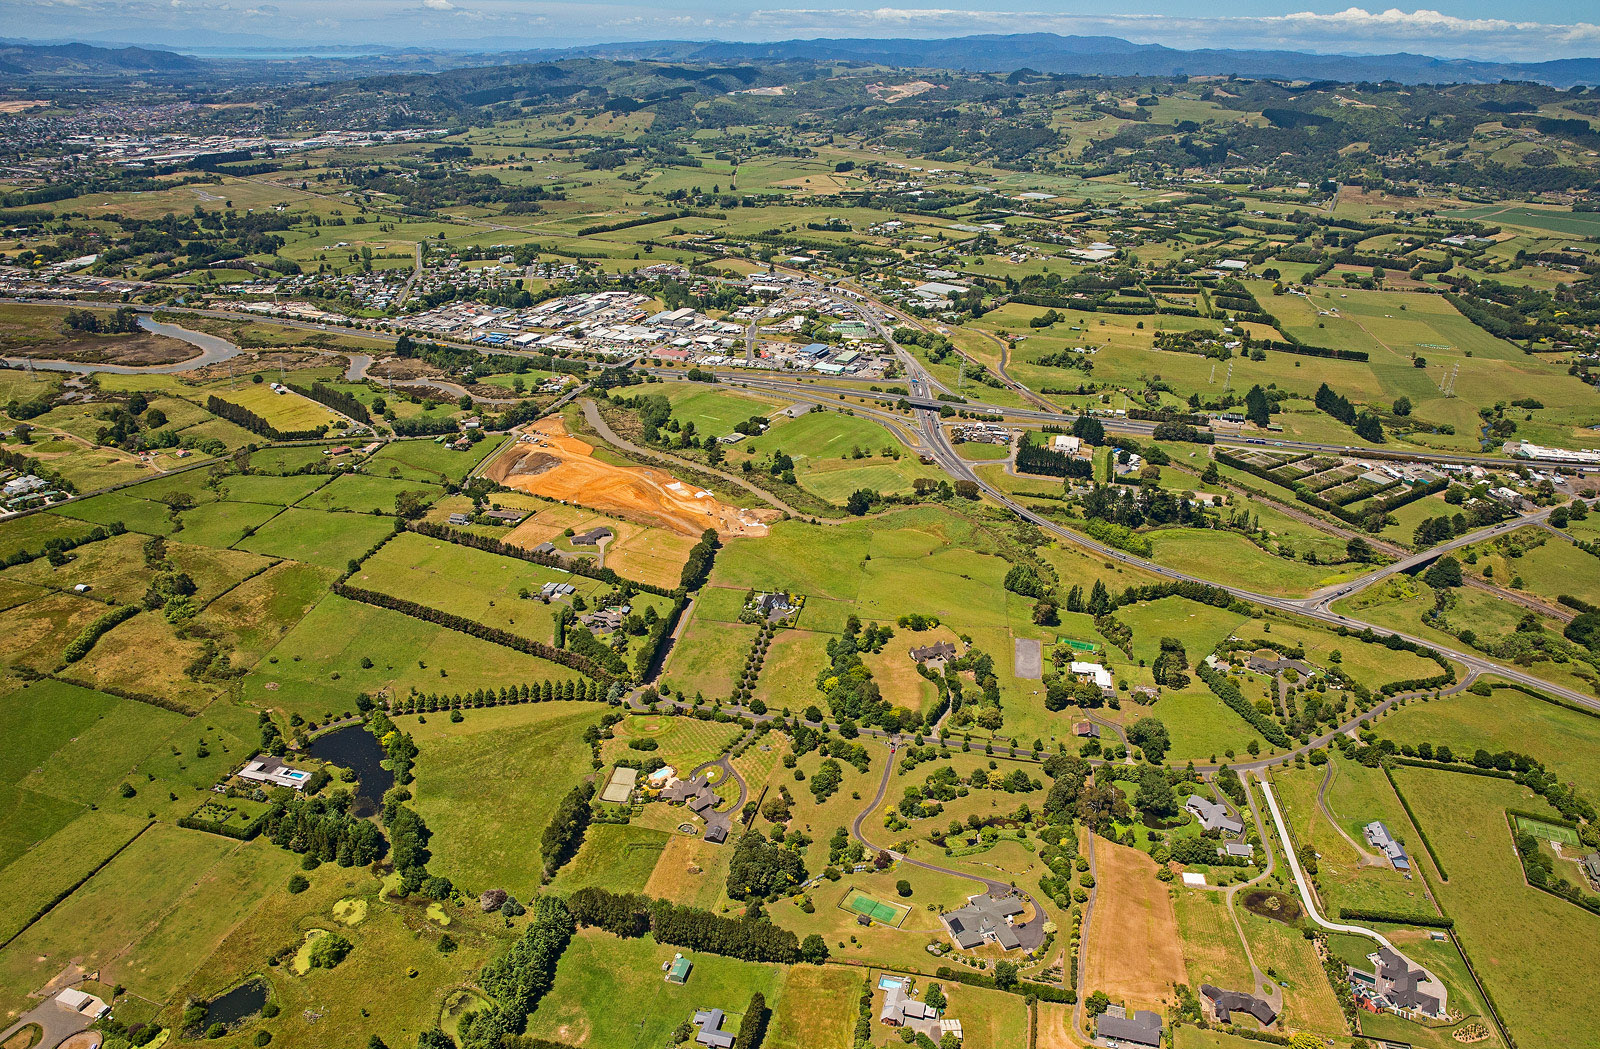 Aerial view of Mill Road between Manukau and Drury South